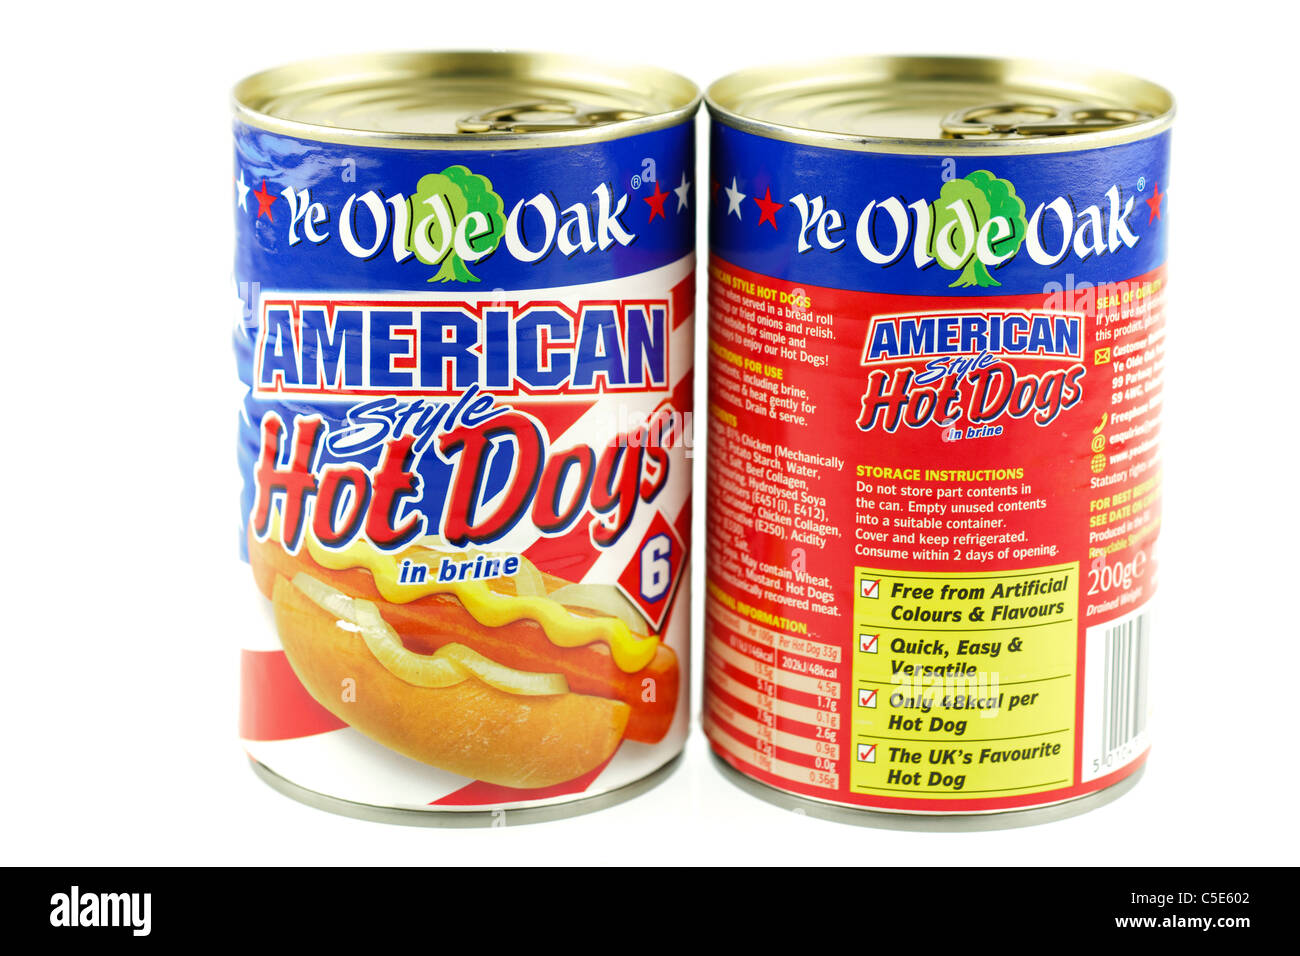 Two tins of Ye Olde Oak American style Hot dogs sausages in brine. - Stock Image